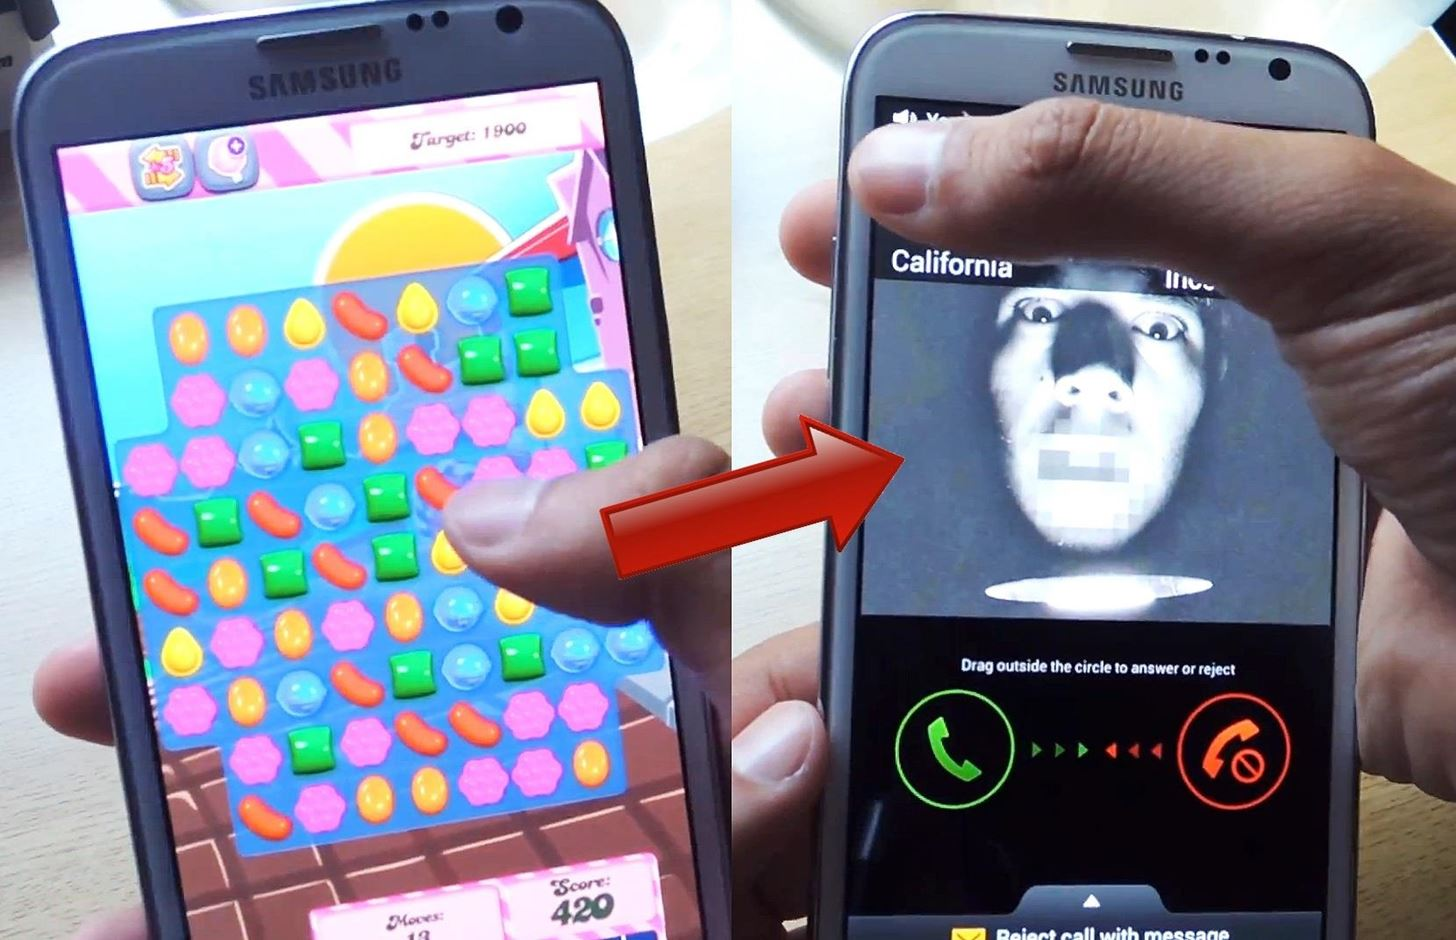 How to Minimize Incoming Calls When Playing Games or Using Apps on Your Samsung Galaxy Note 2